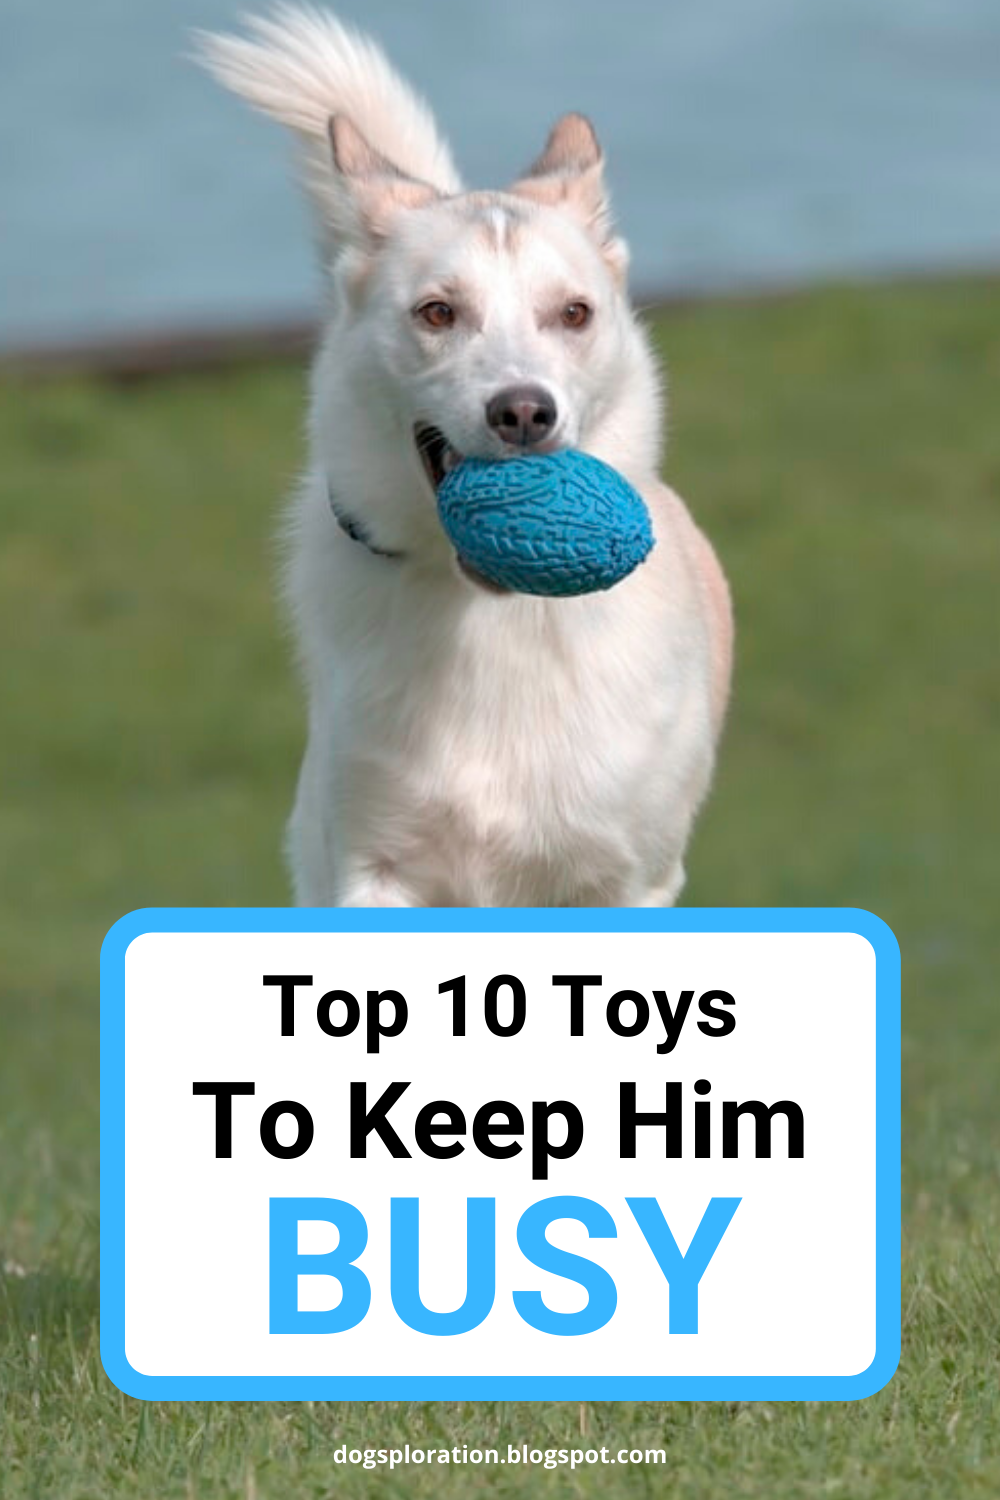 10 Best Toys To Keep Your Dog Busy 2020 In 2020 Stimulating Dog Toys Best Dog Toys Dogs